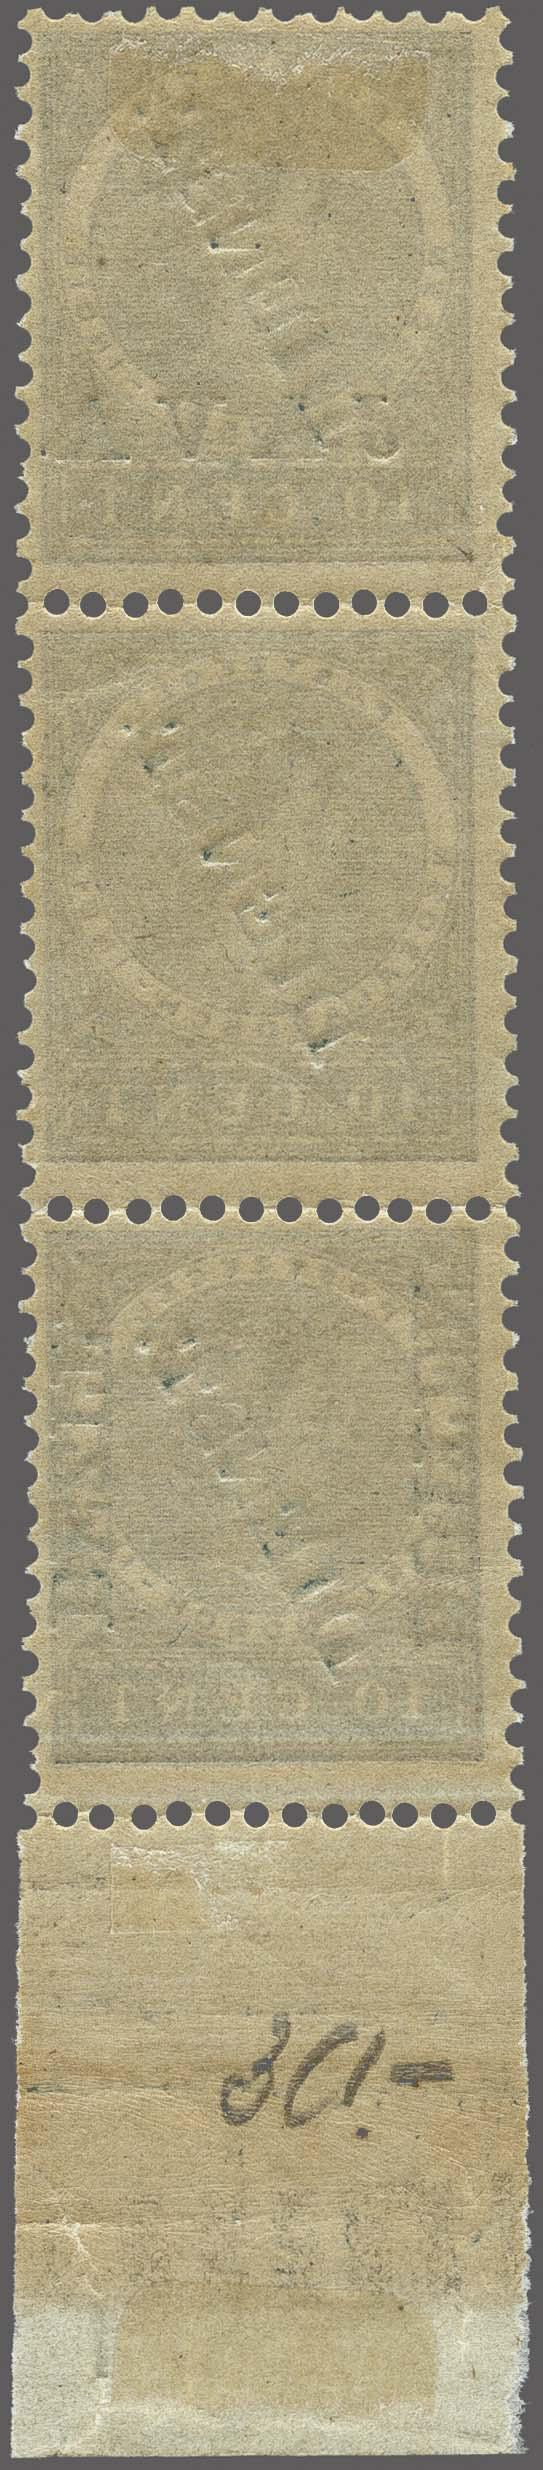 Lot 3317 - Netherlands and former colonies Netherlands Indies -  Corinphila Veilingen Auction 250-253 - Day 4 - Proofs of Netherlands former colonies